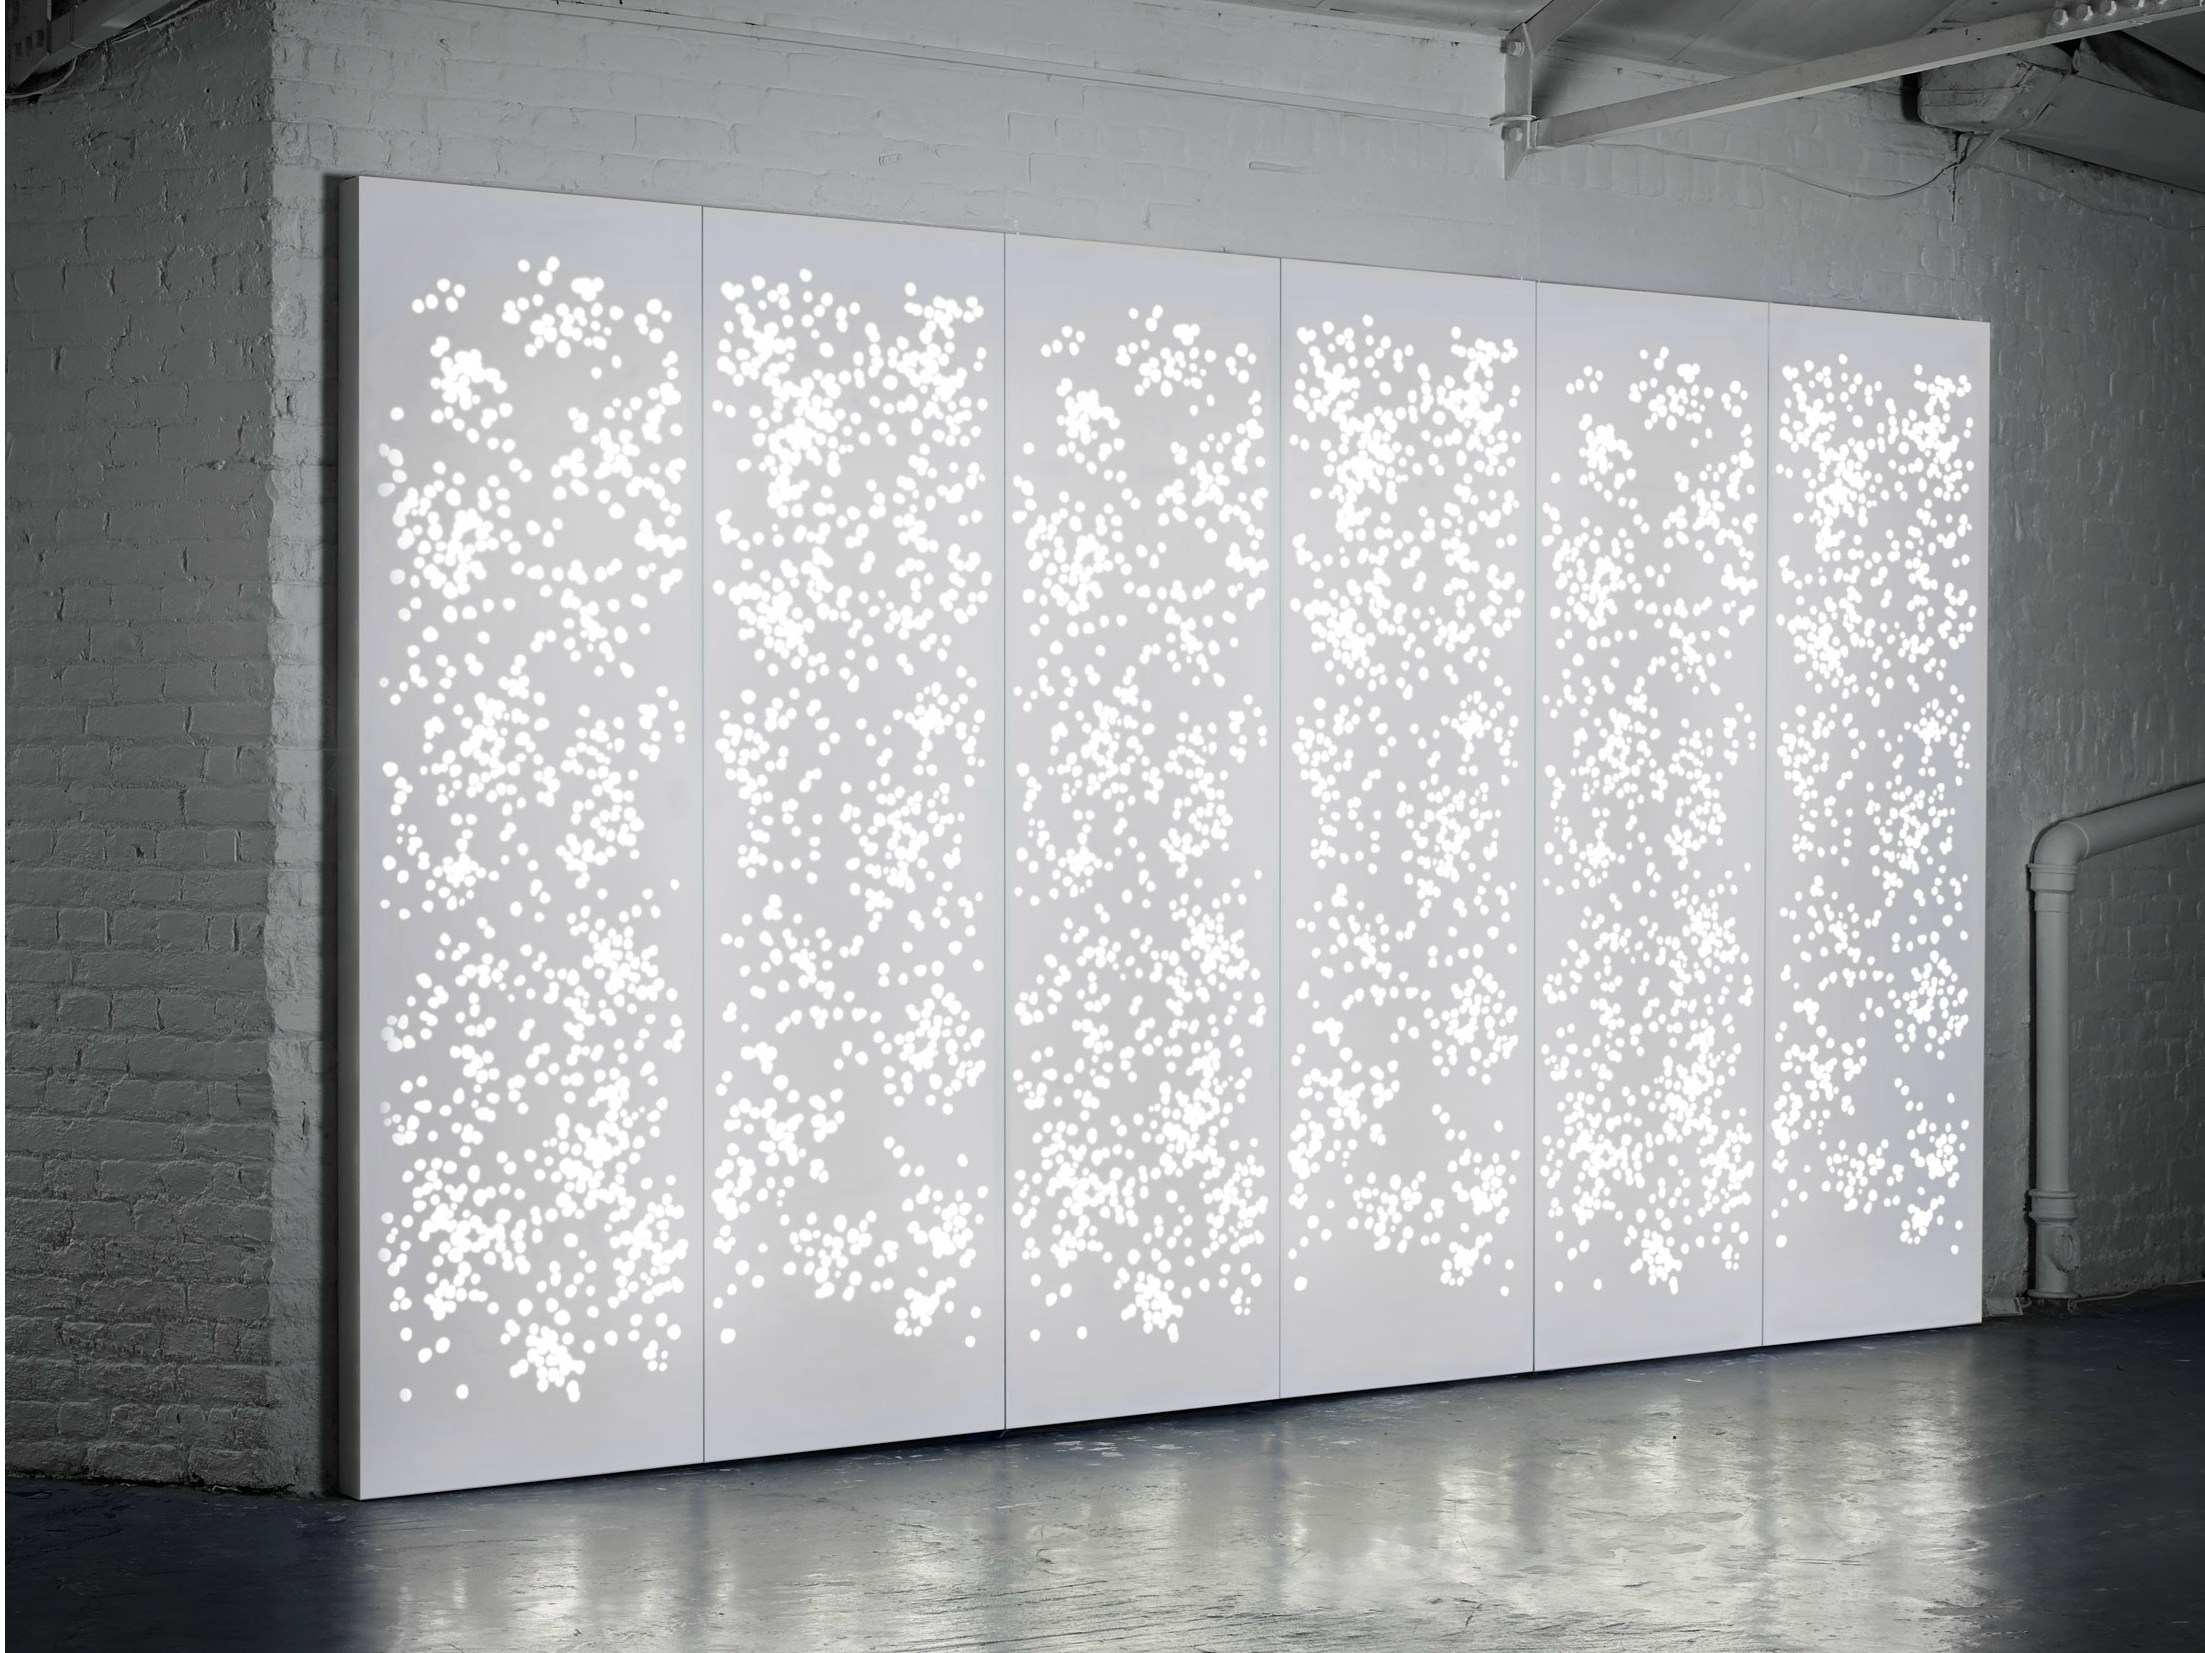 Light Wall Room Divider By Isomi Design Paul Crofts